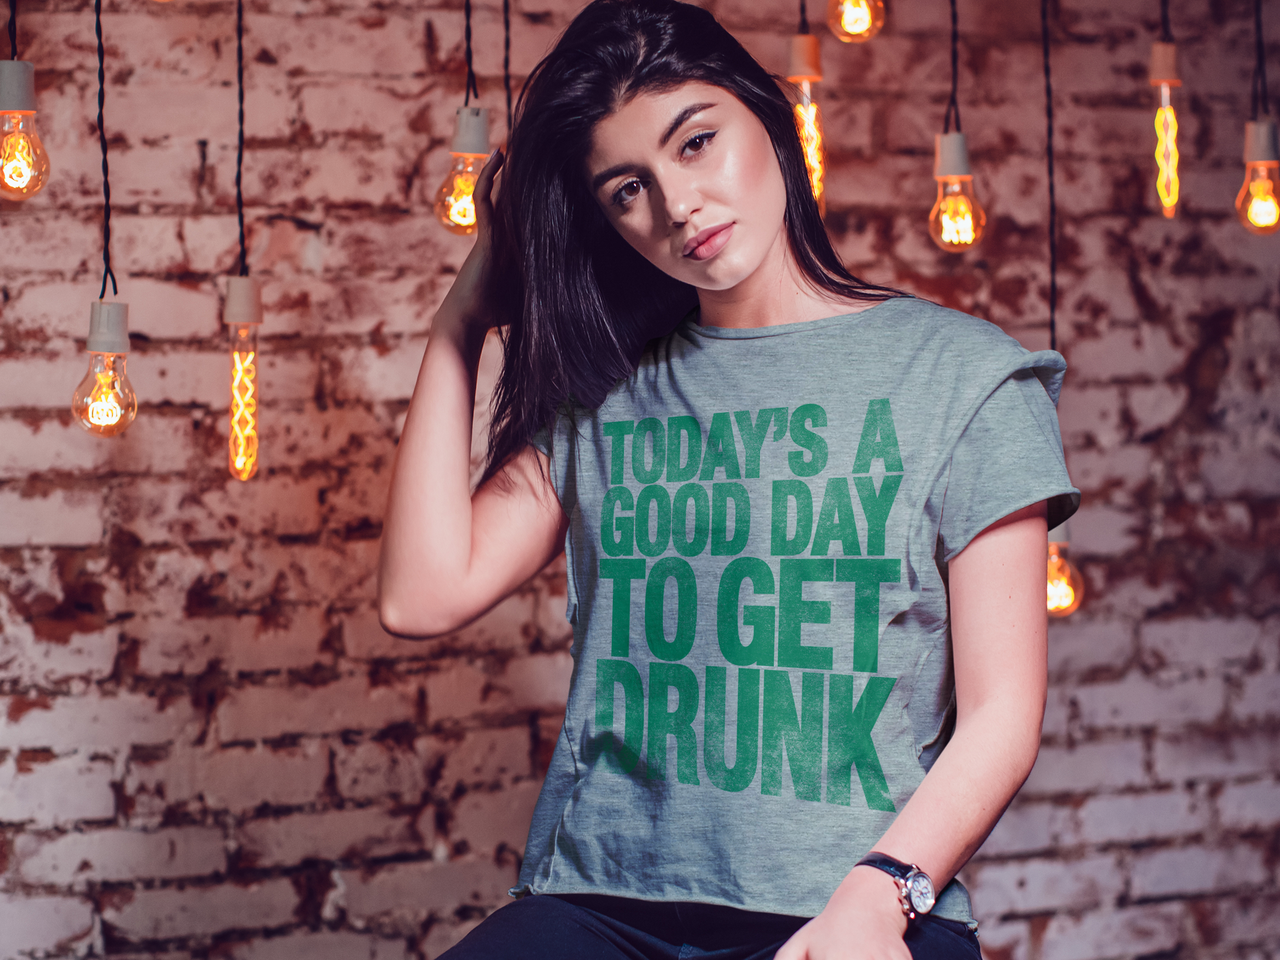 Good Day To Get Drunk St. Patrick's Day T-shirt